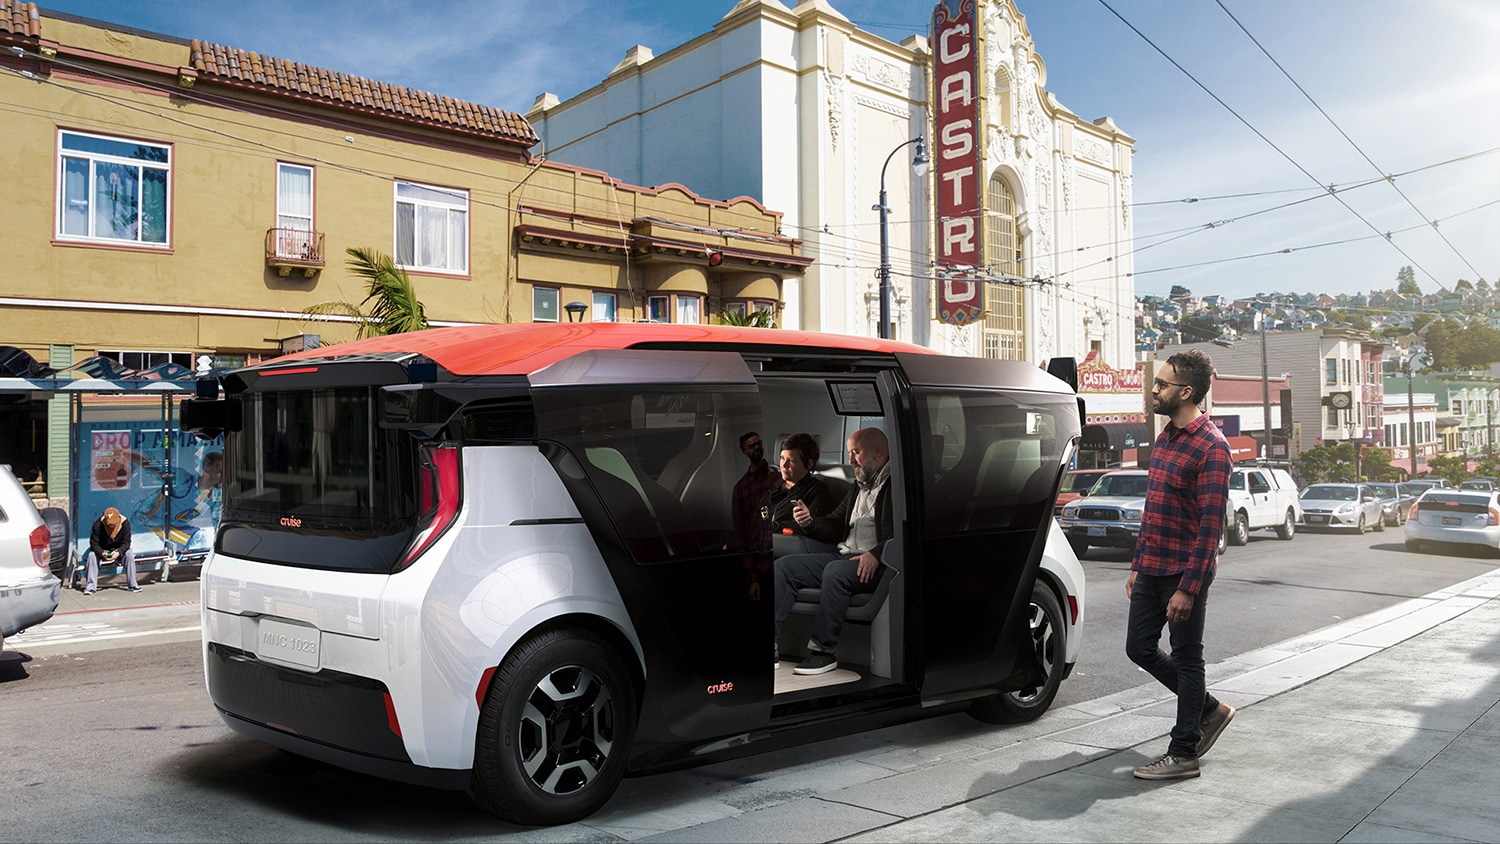 Cruise Origin, a self-driving shuttle van without steering wheel or pedals